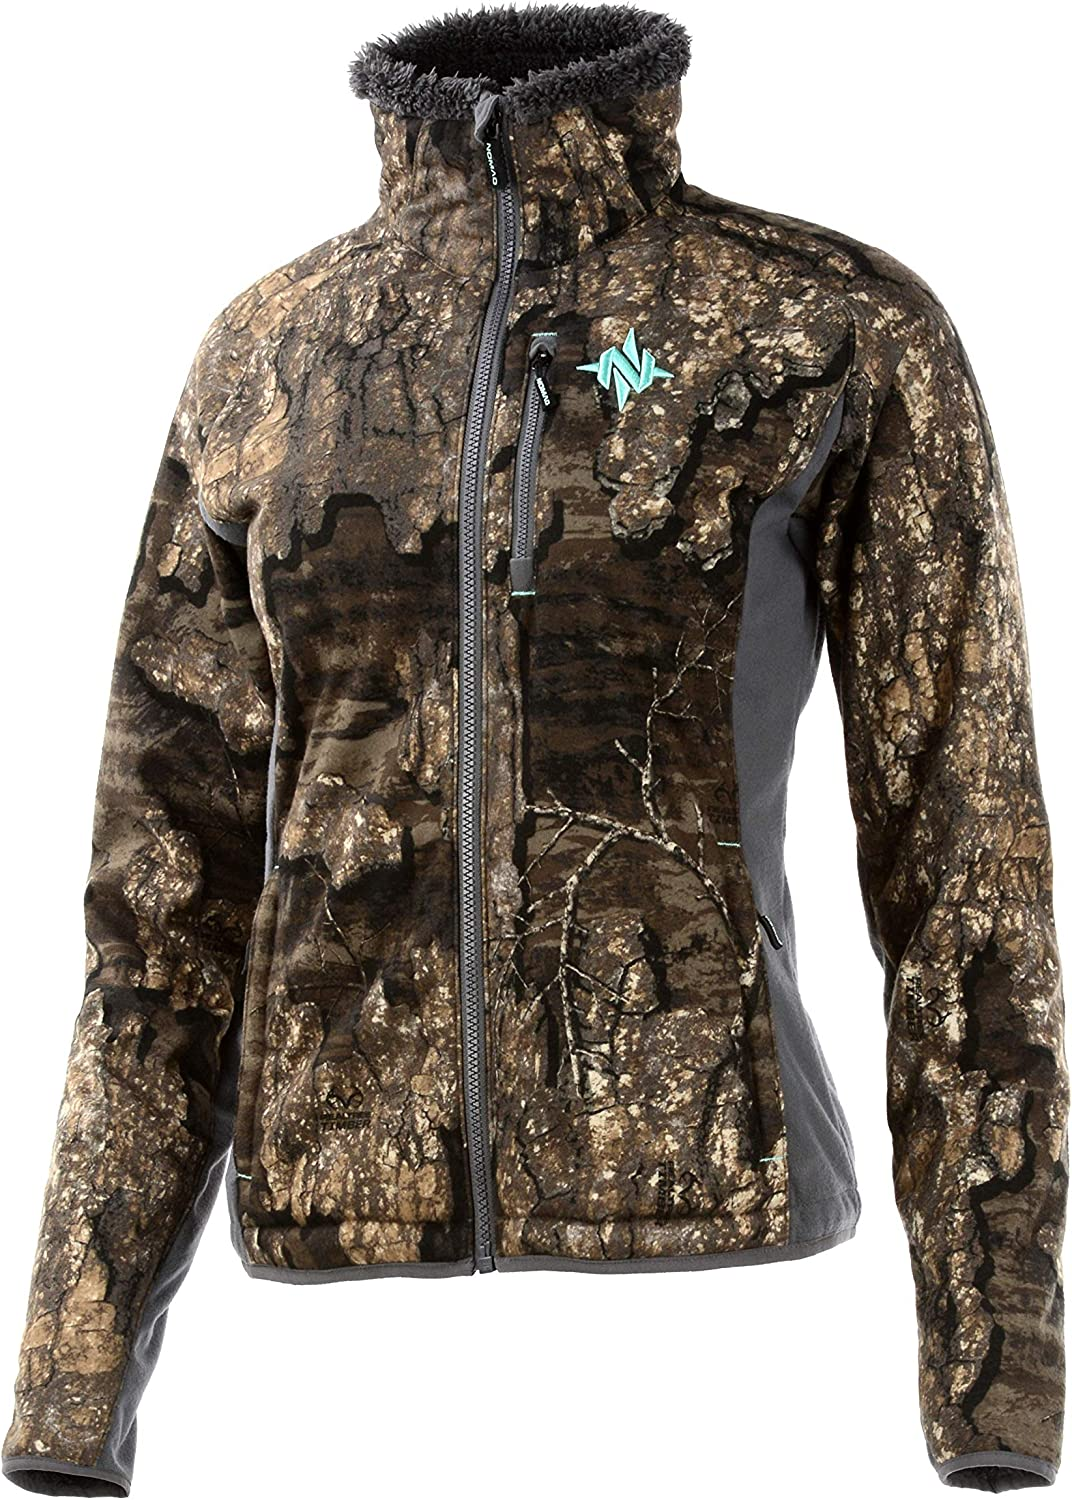 Nomad Women's Harvester Jacket, Mossy Oak Break Up Country, 2X-Large